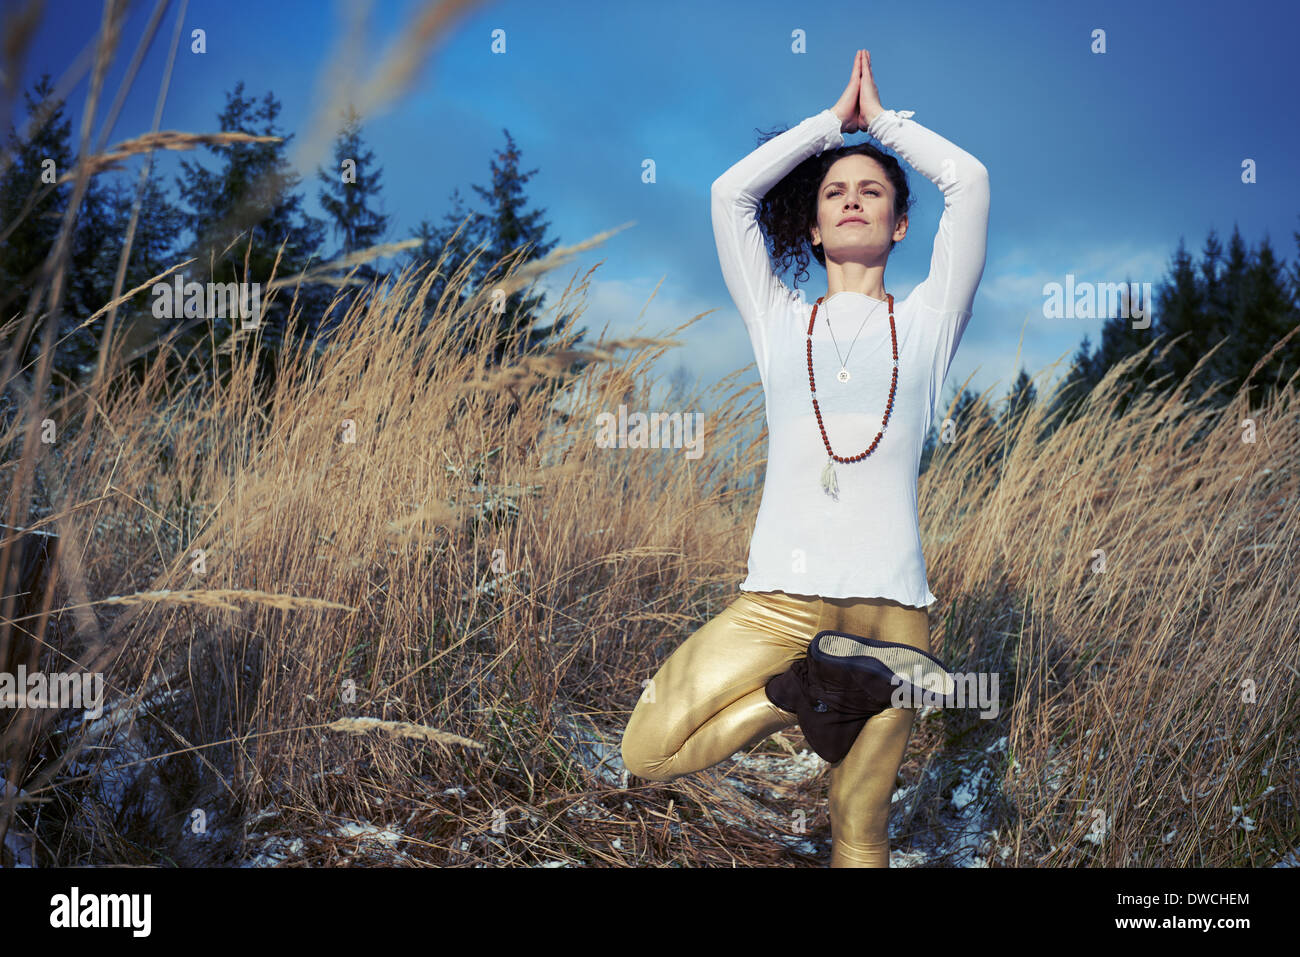 Mid adult woman doing standing tree yoga pose in forest - Stock Image